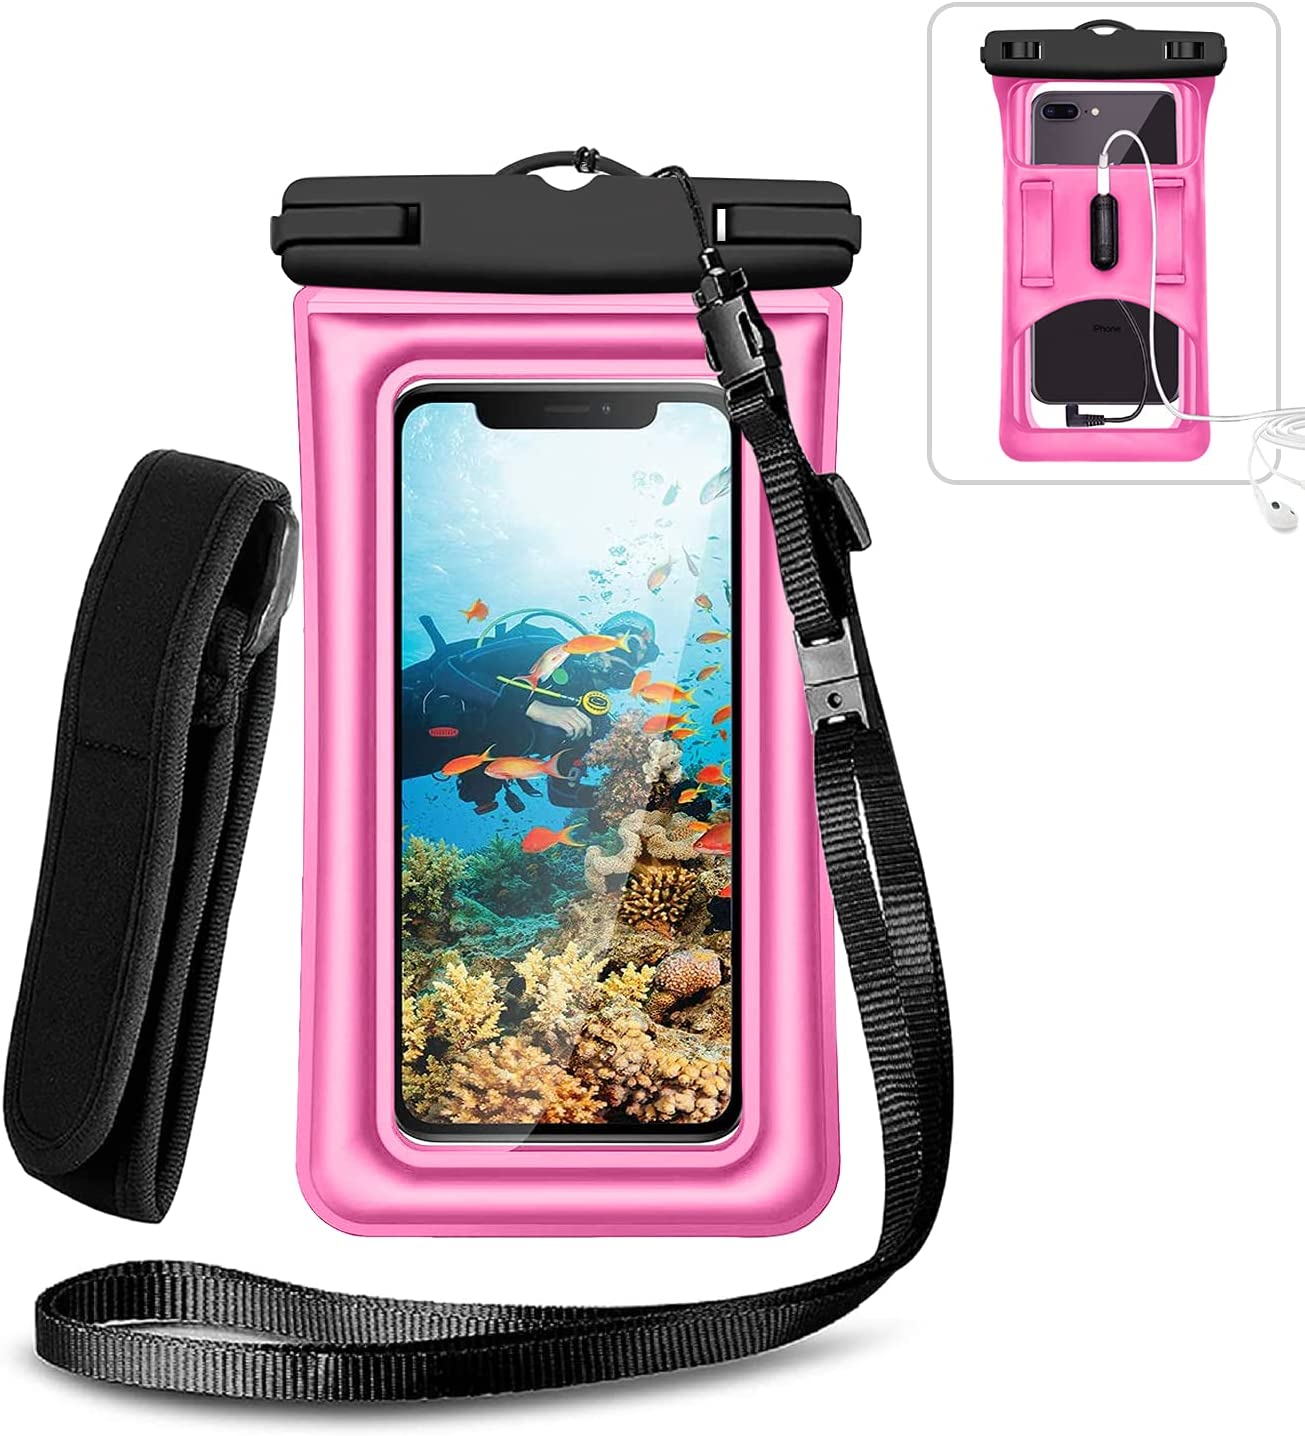 Weuiean Floating Waterproof Phone Case, Waterproof Phone Bag with Armband Jack, Adjustable Lanyard Phone Dry Bag for iPhone 12/11/SE/XS/XR/8/7/6Plus, Samsung S21/20/10/10+ up to 6.5 inch - Rose